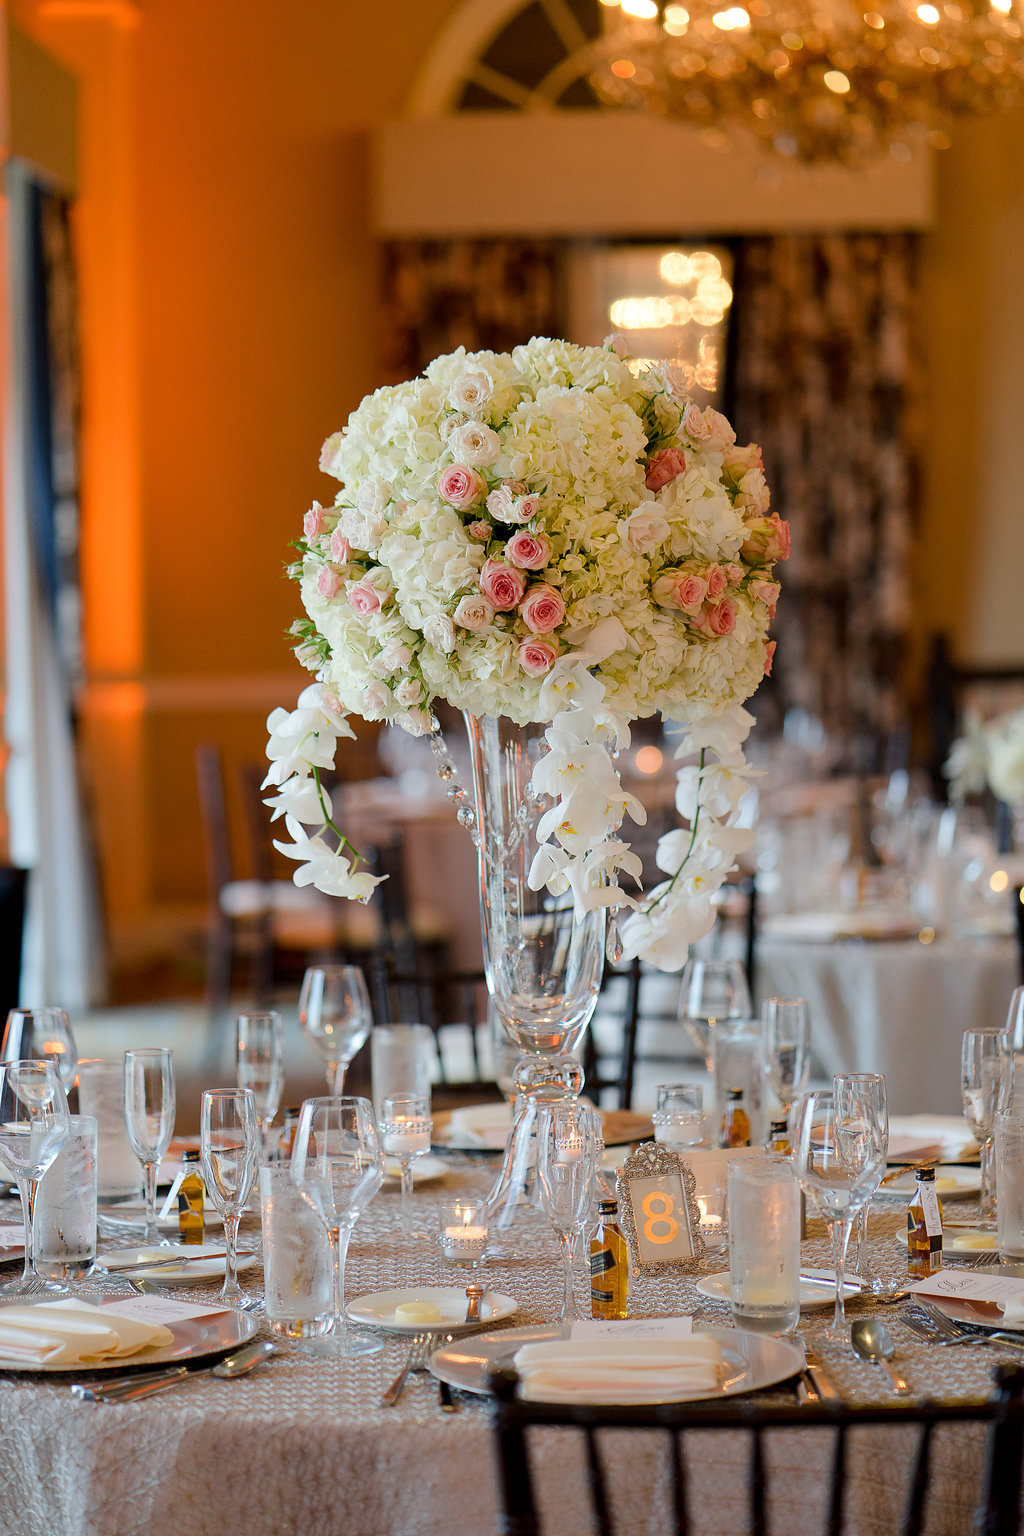 Hotel Ballroom Wedding Reception Round Table with Extra Tall Hydrangea, White ORchid and Pink Rose Centerpiece in Glass Vase, Gold Table Number, Mini Liquor Bottle Favor, Black Chiavari Chairs | Champagne Textured Linen Rentals Kate Ryan Linens | Historic St Pete Beach Hotel Wedding Venue The Don CeSar